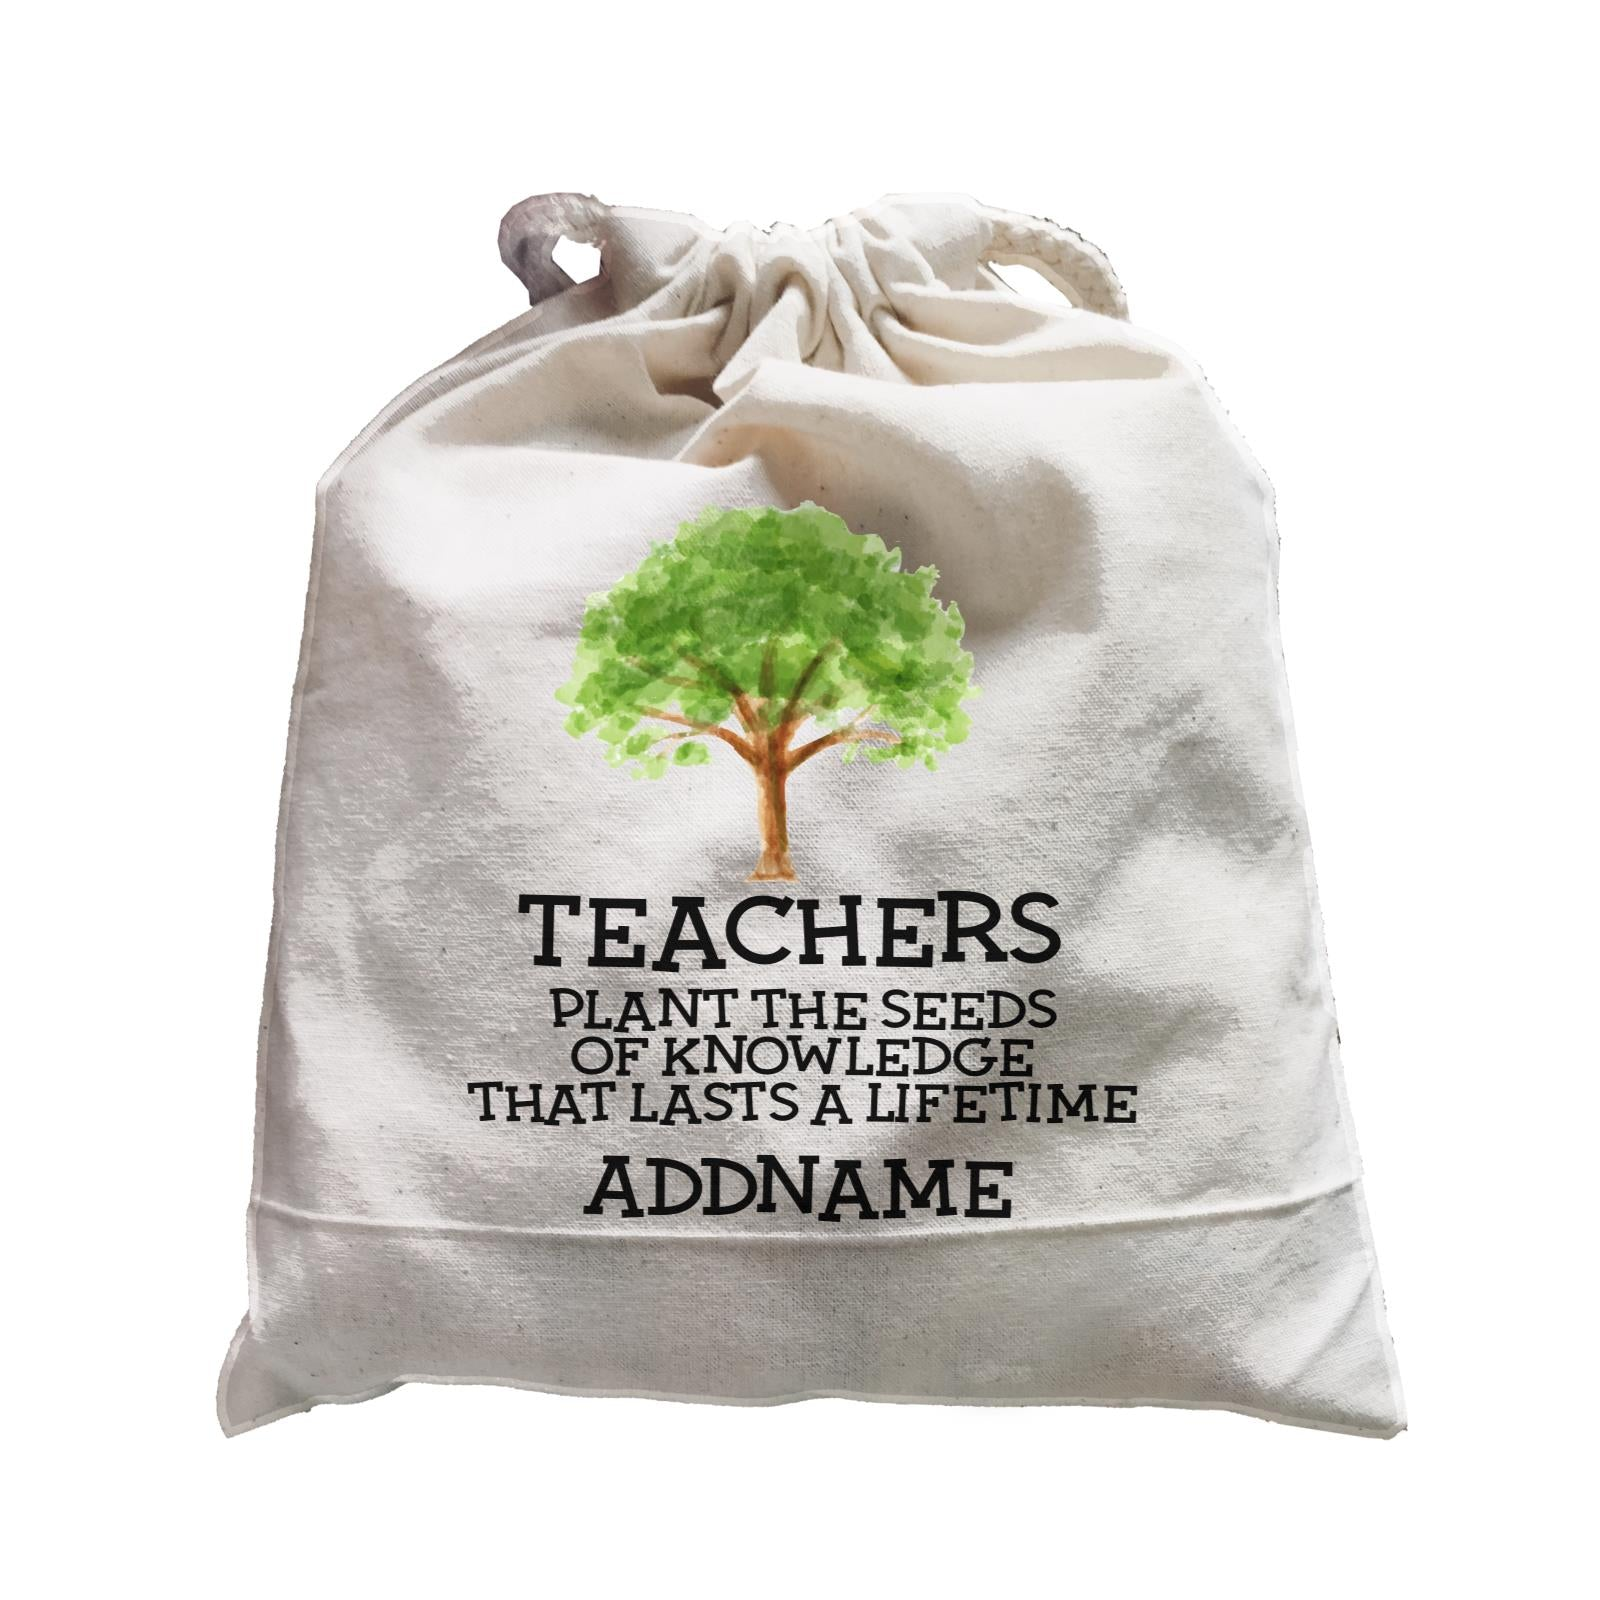 Teacher Quotes 2 Teachers Plant The Seeds Of Knowledge That Lasts A Lifetime Addname Satchel